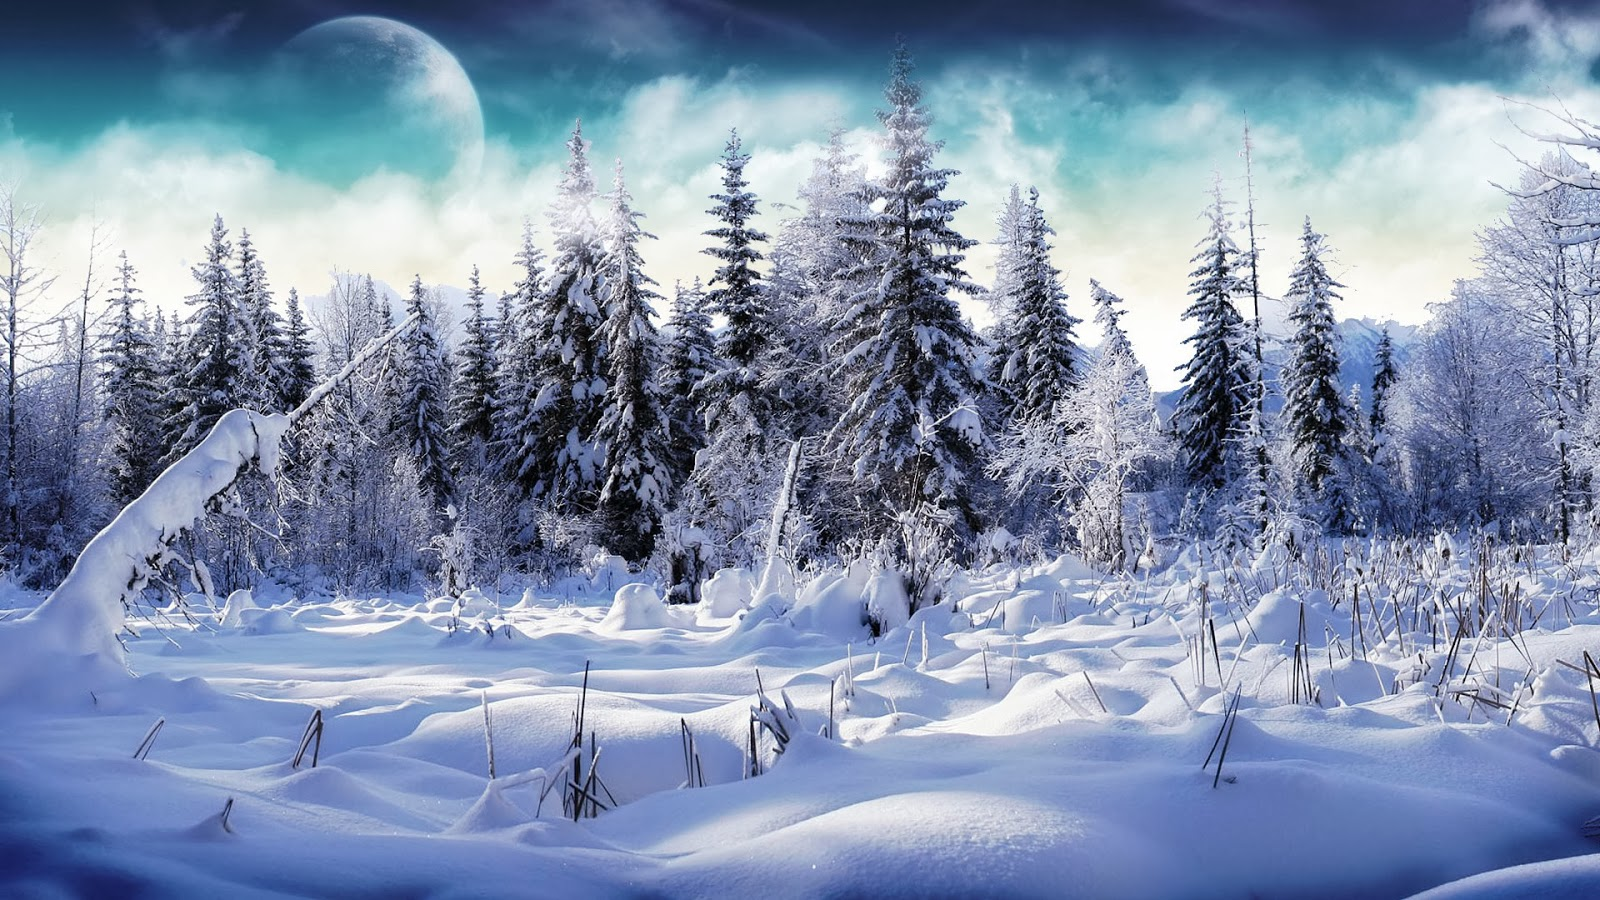 Snow fall winter hd wallpapers hd wallpapers blog - Snowy wallpaper ...